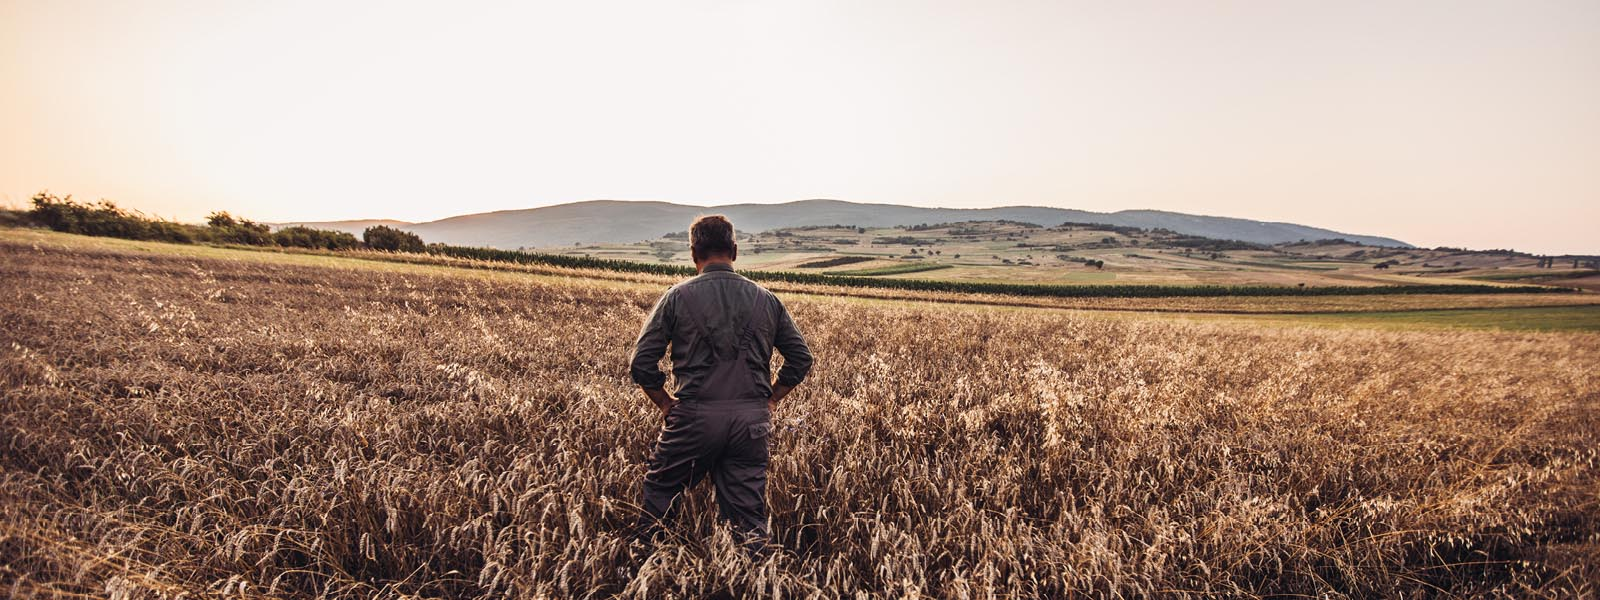 Landowner standing in a field surveing for pests